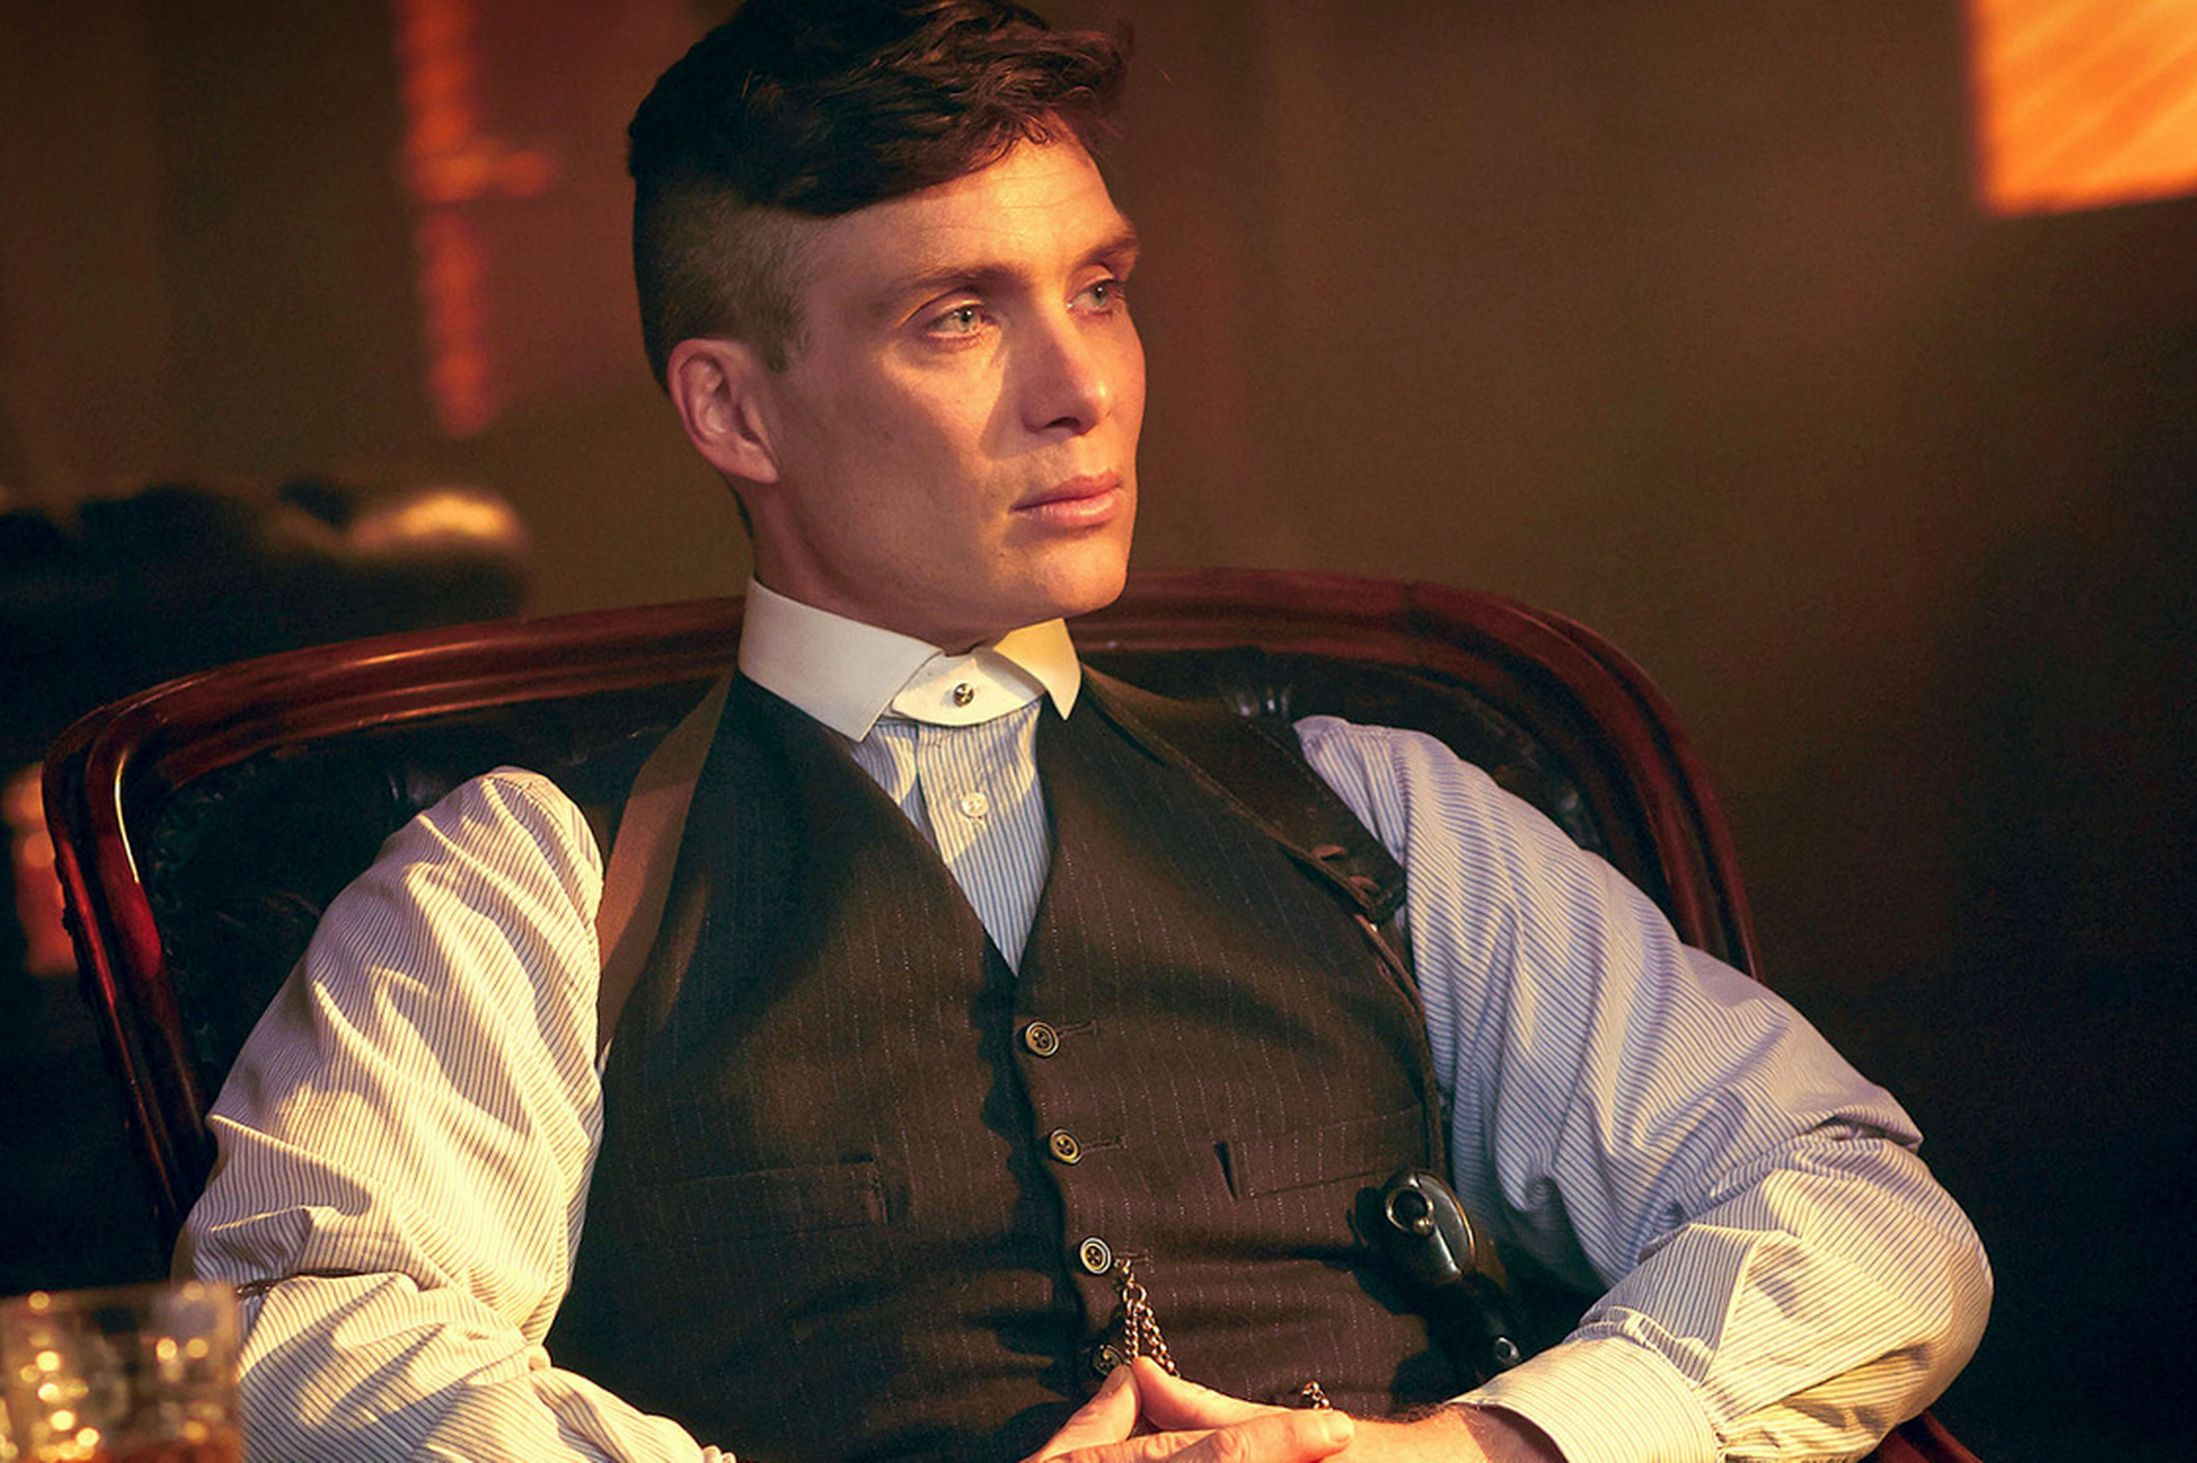 Ring In A Happy Bloody New Year With Peaky Blinders